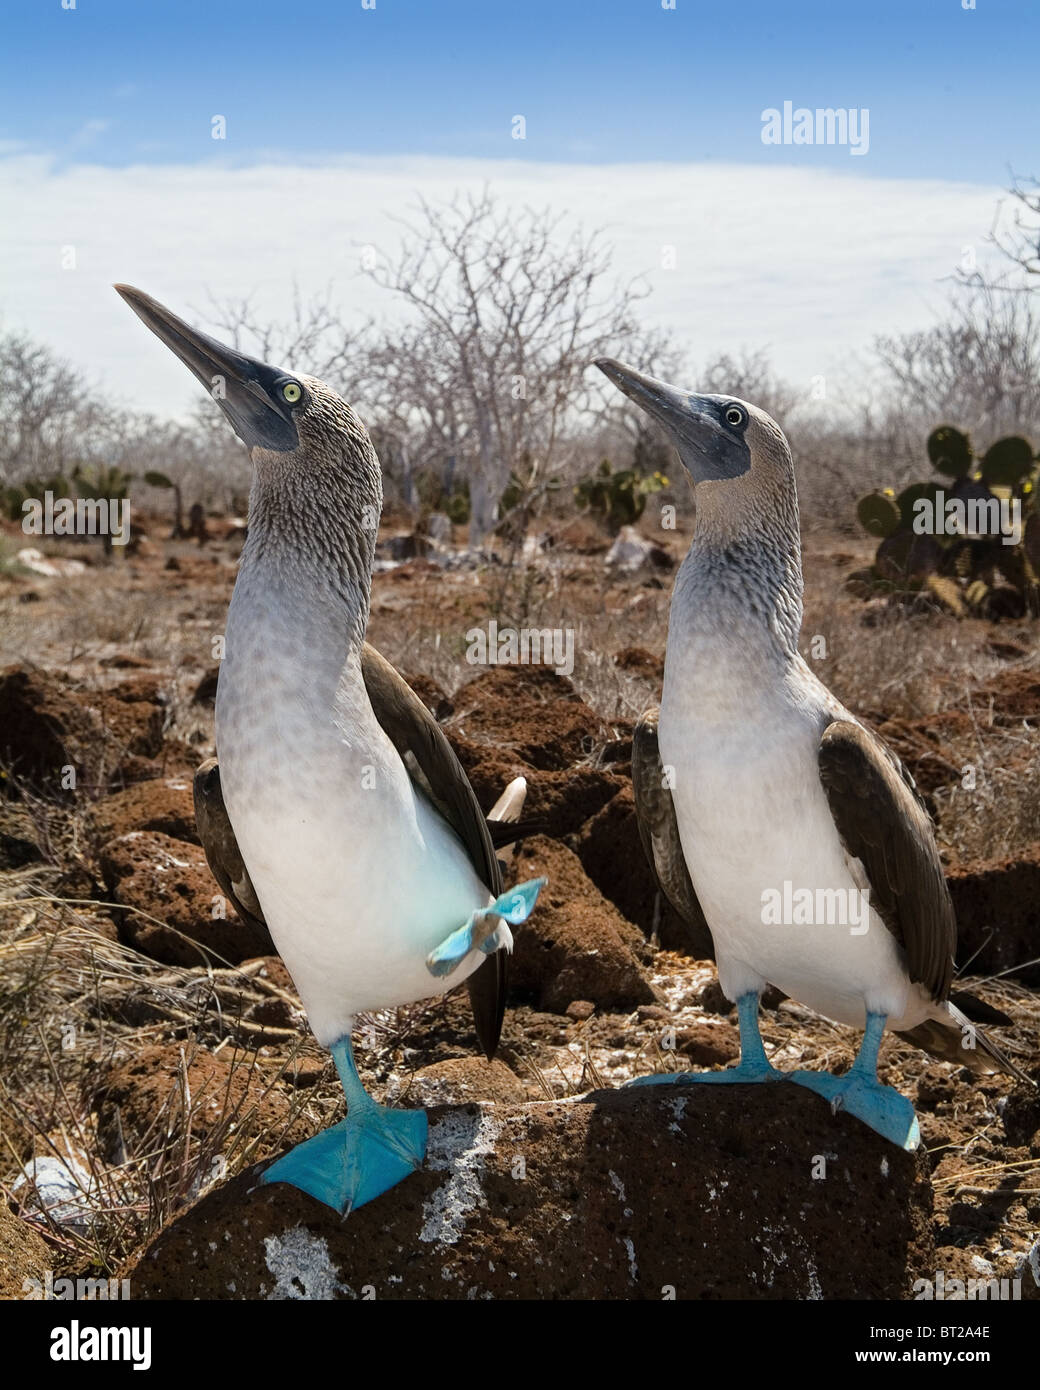 The Blue-footed Boobies a bird in the Sulidae family which comprises ten species of long-winged seabirds. - Stock Image